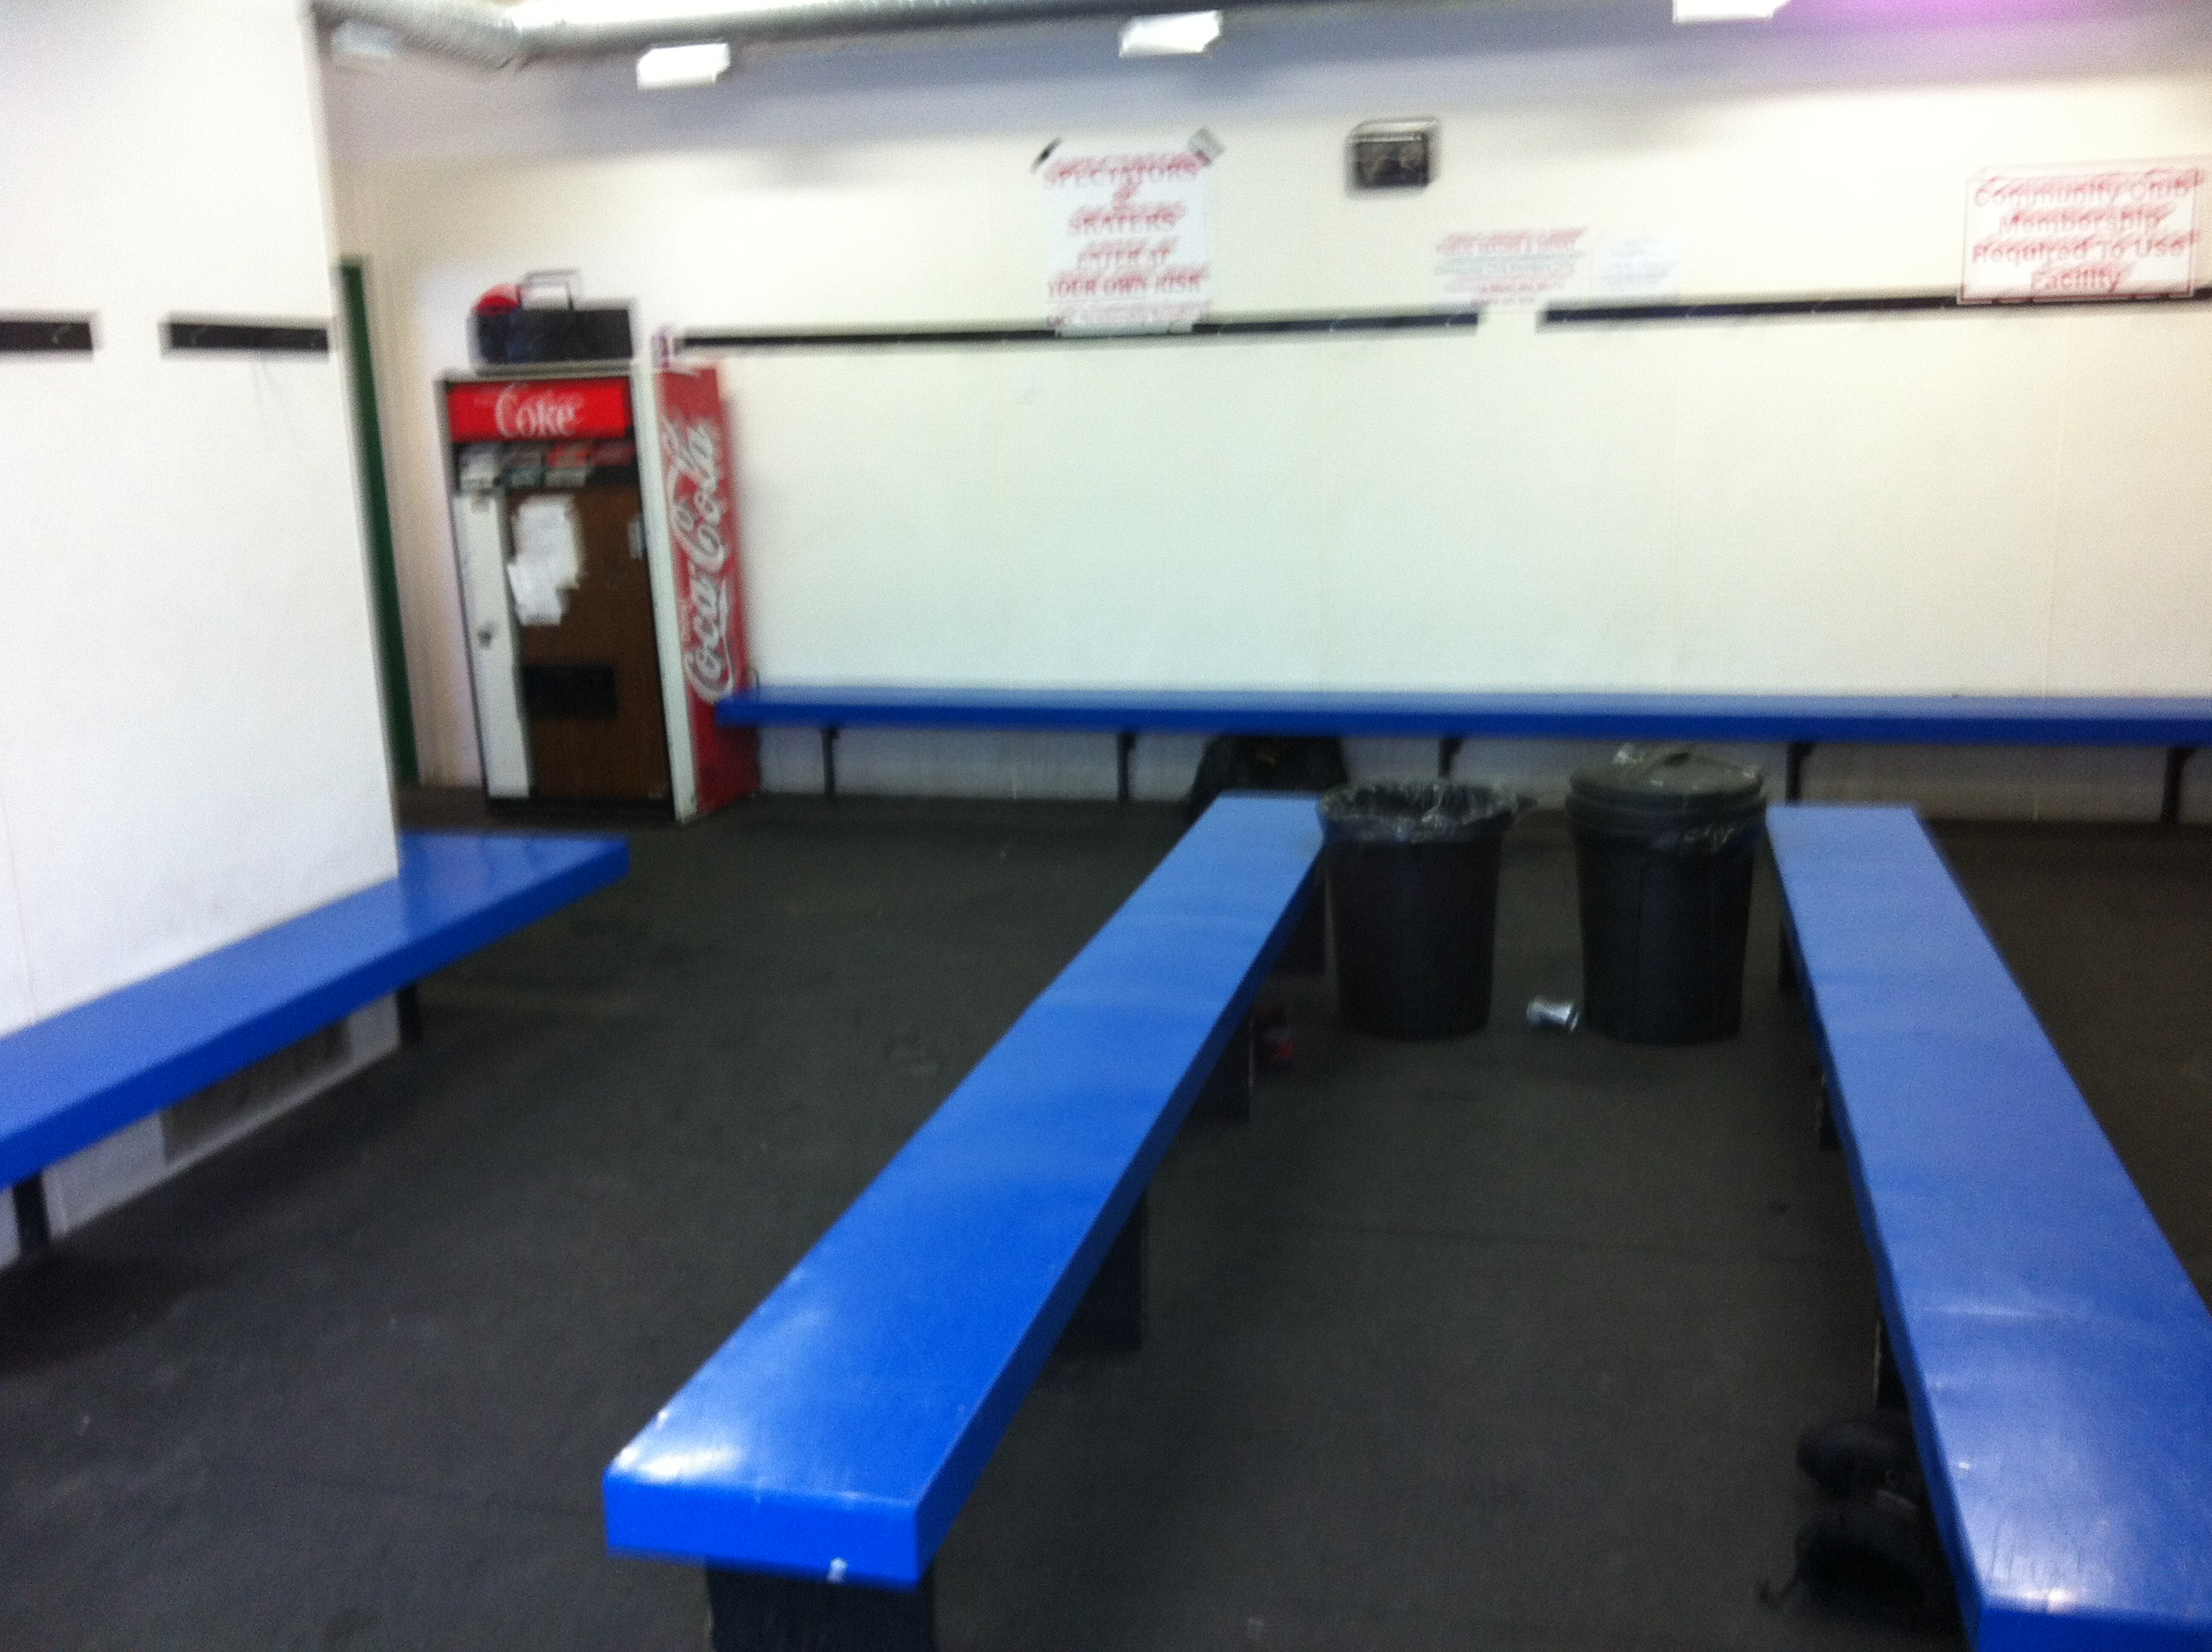 Cres Acres skate warmup room 5 2012.JPG